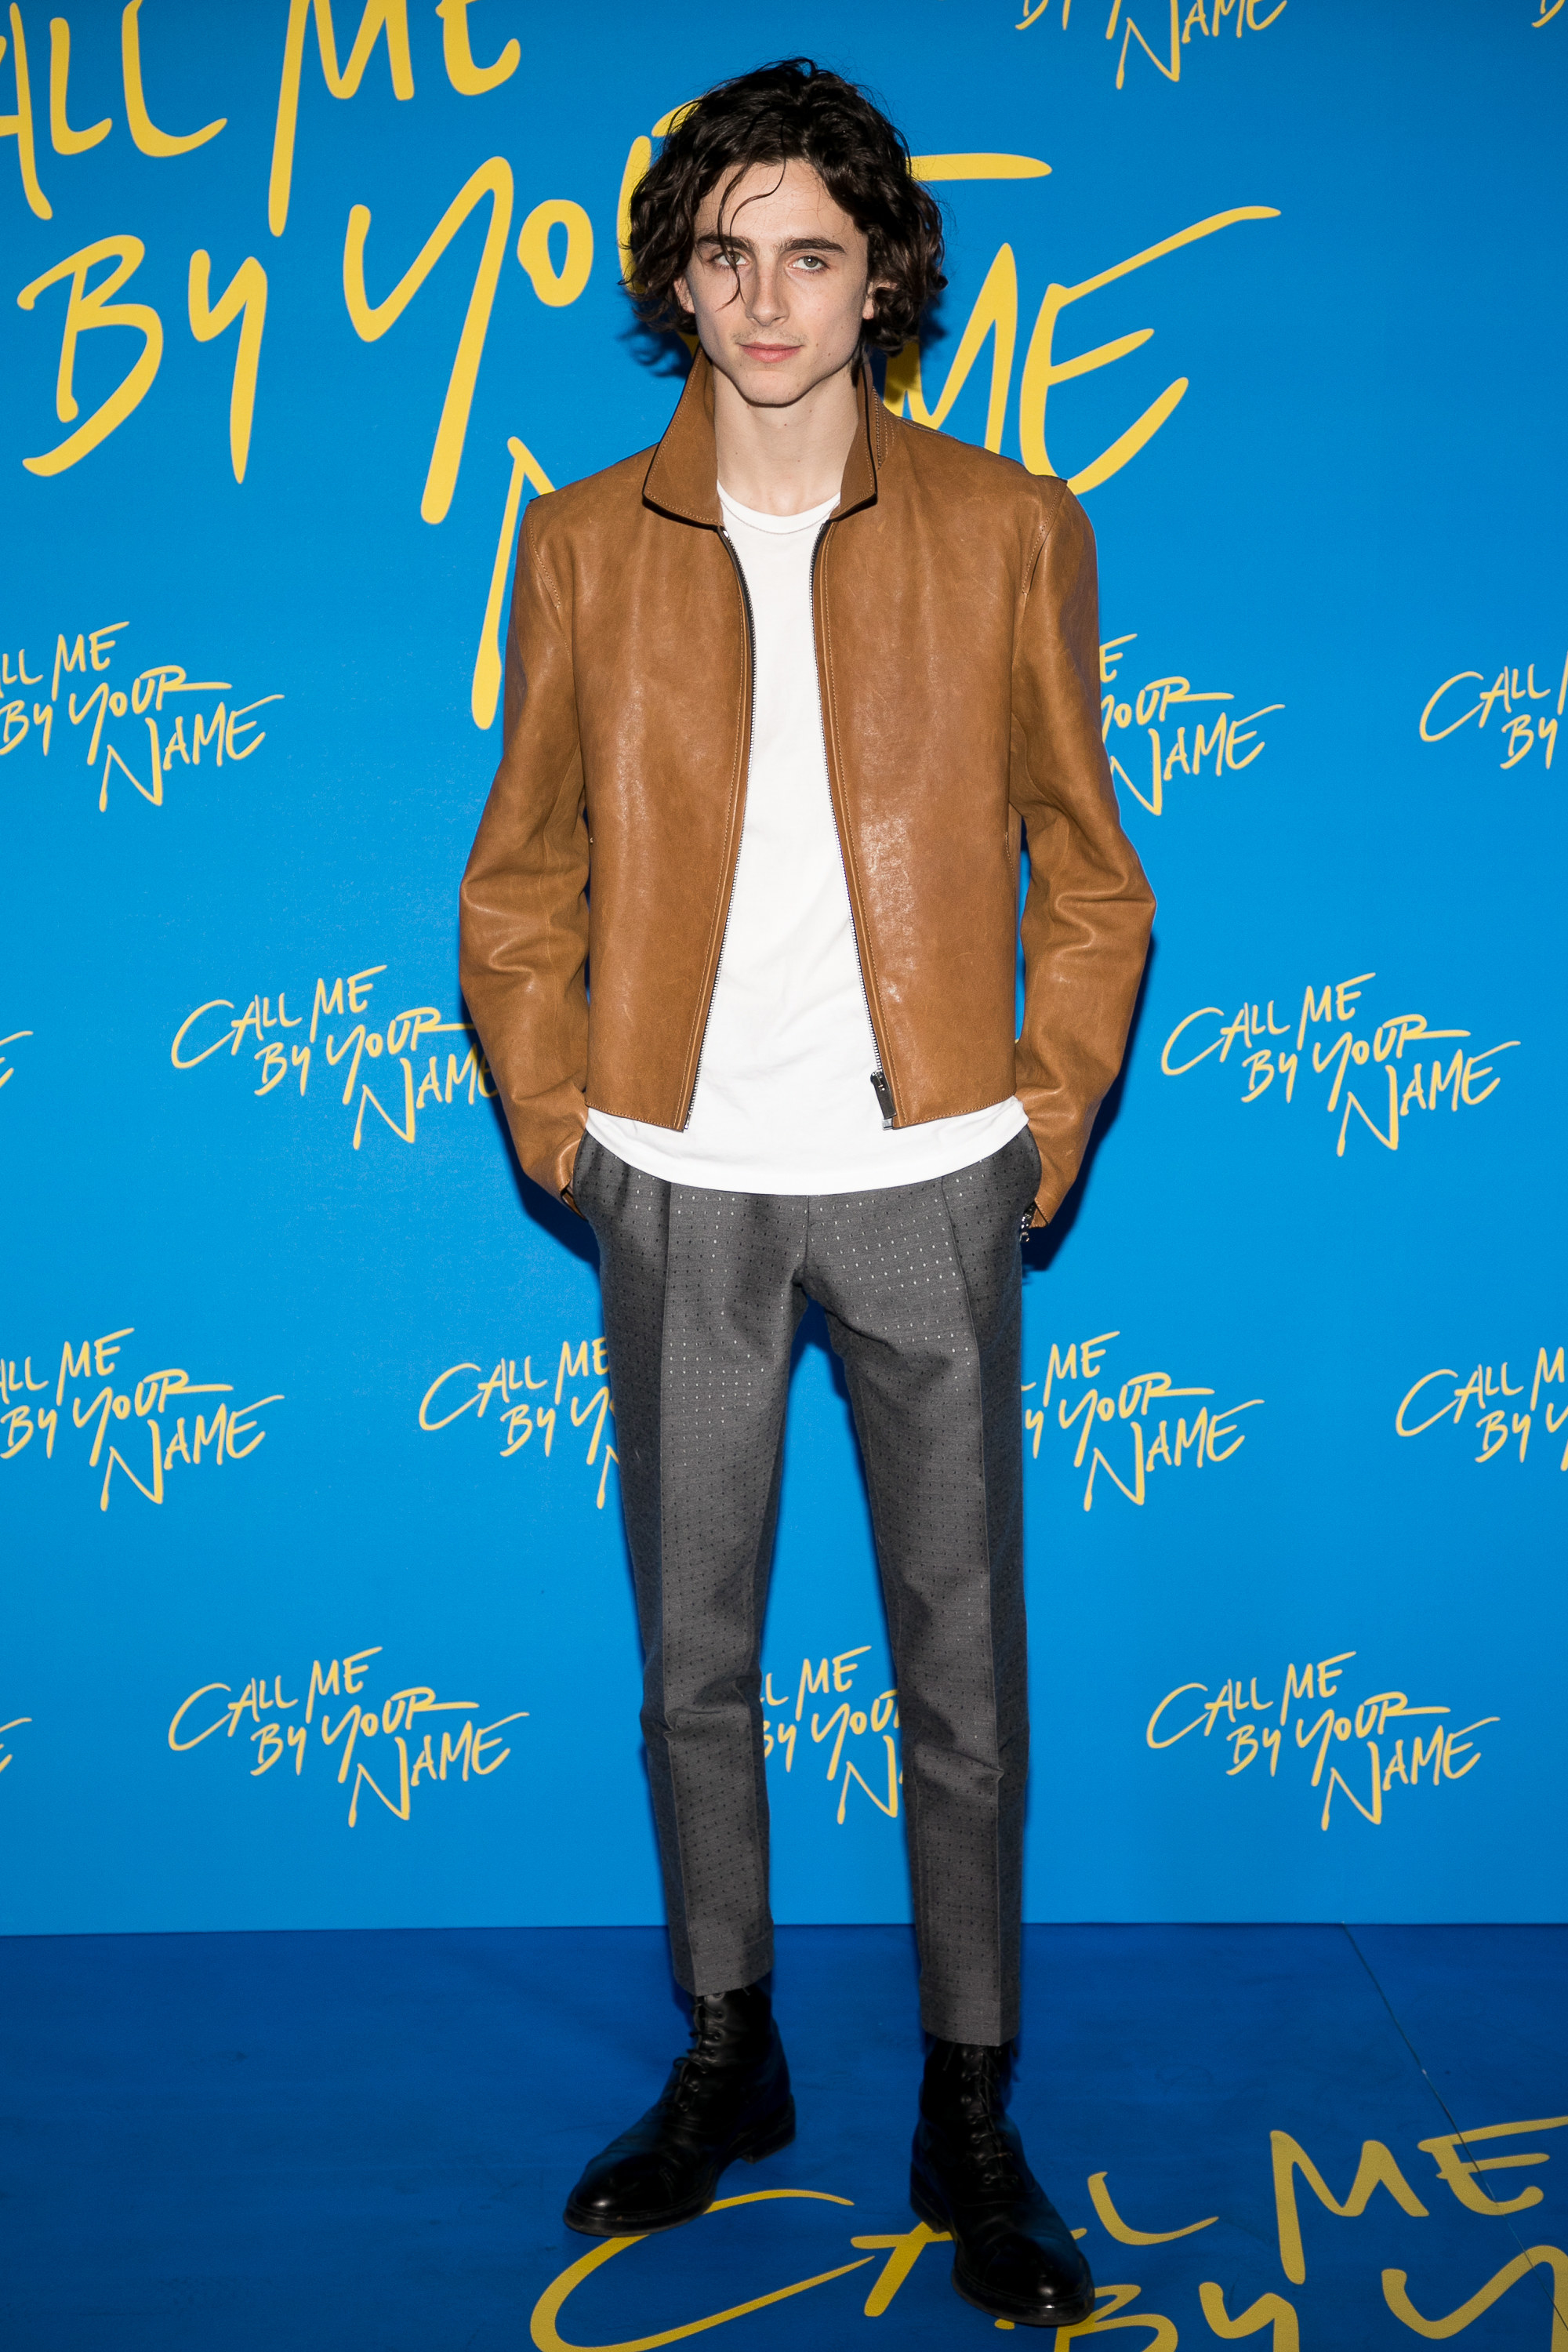 Timothée wears a brown leather jacket, a white tee, and grey suit pants